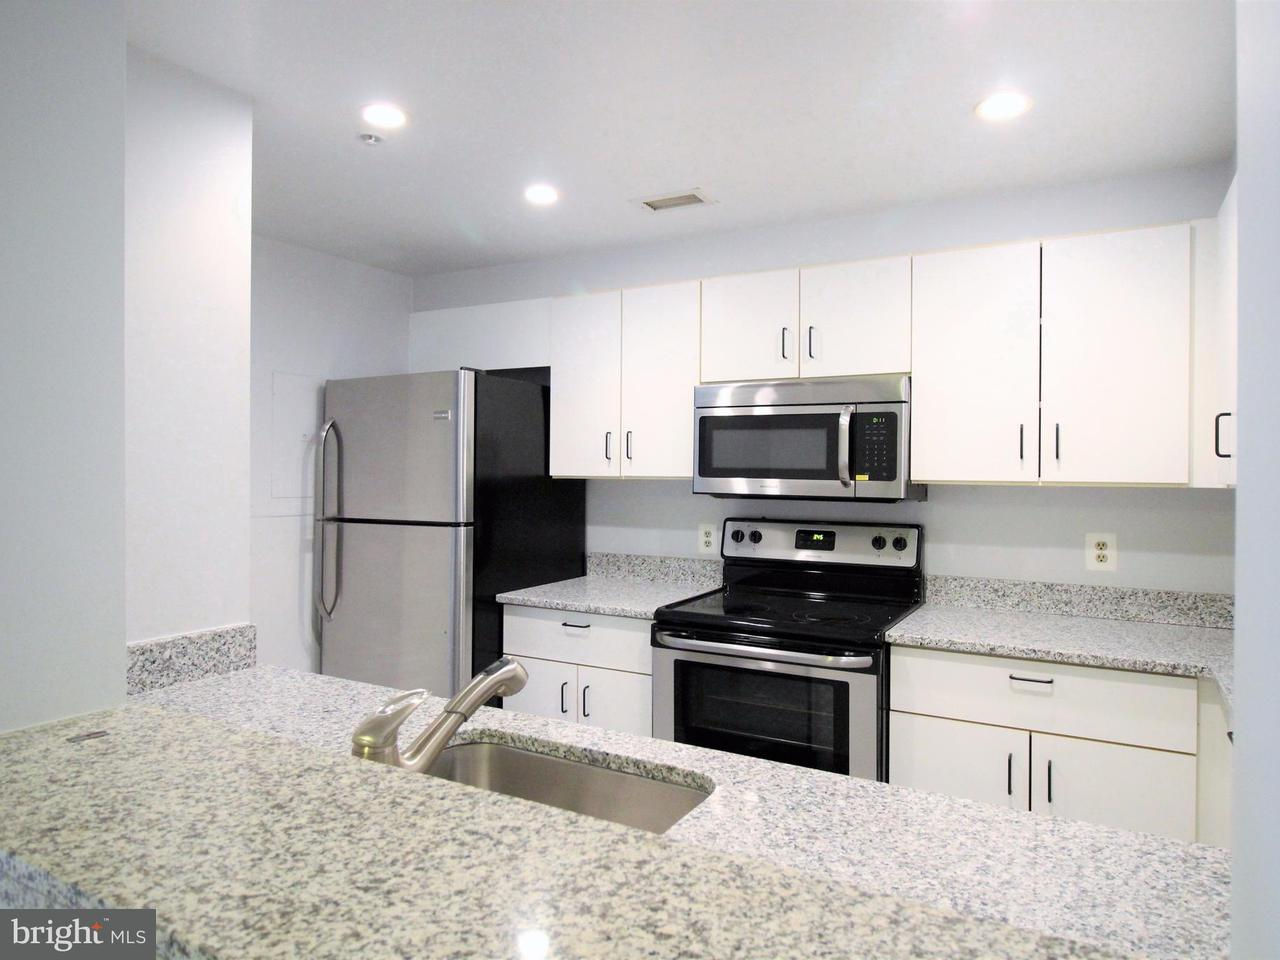 Single Family Home for Sale at 2301 N ST NW #417 2301 N ST NW #417 Washington, District Of Columbia 20037 United States